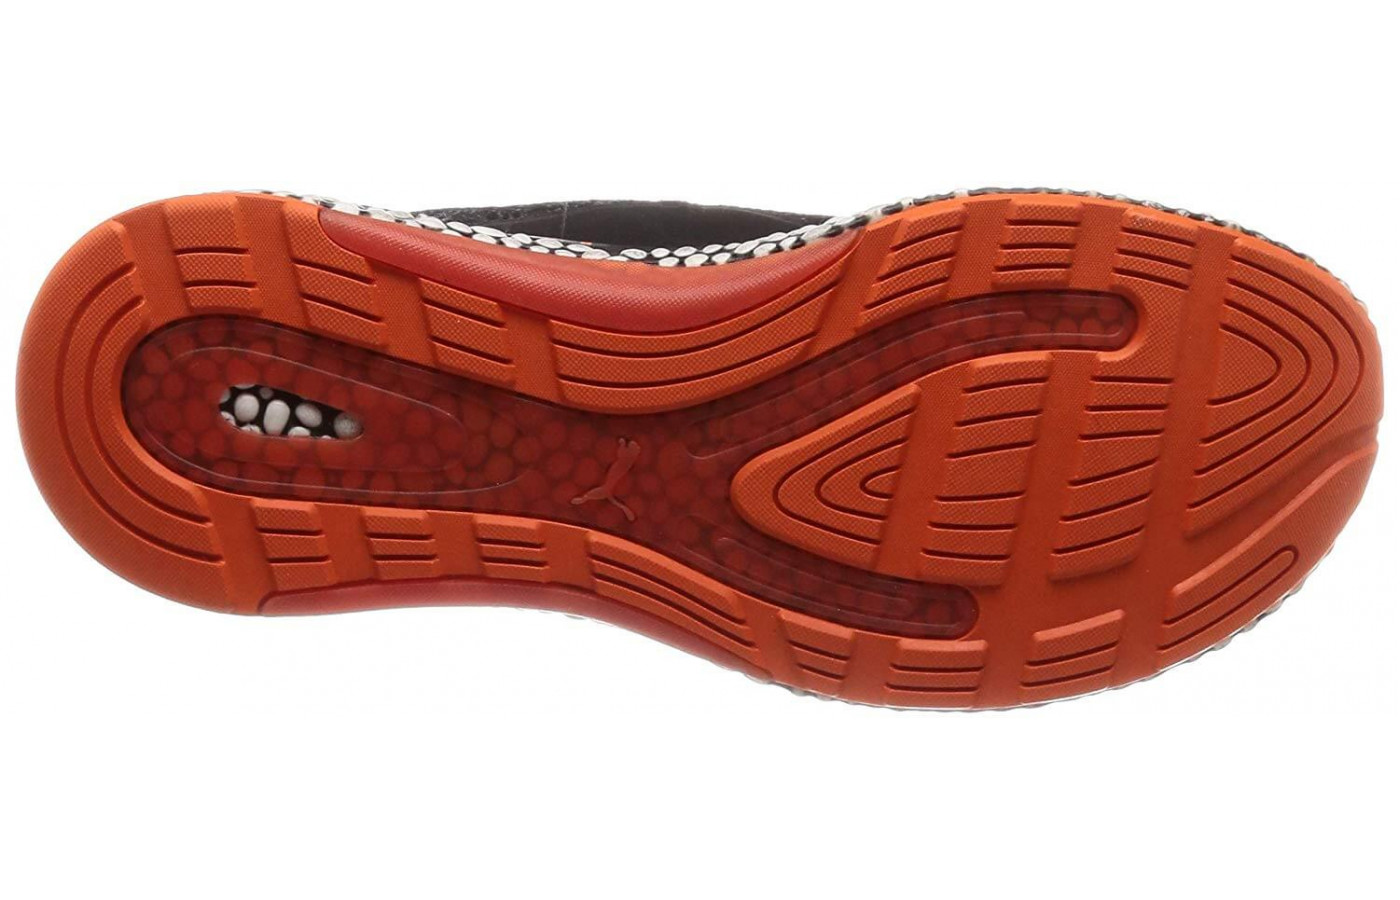 63a958fd82bf The Hybrid Runner s outsole is made from a simple rubber compound ...